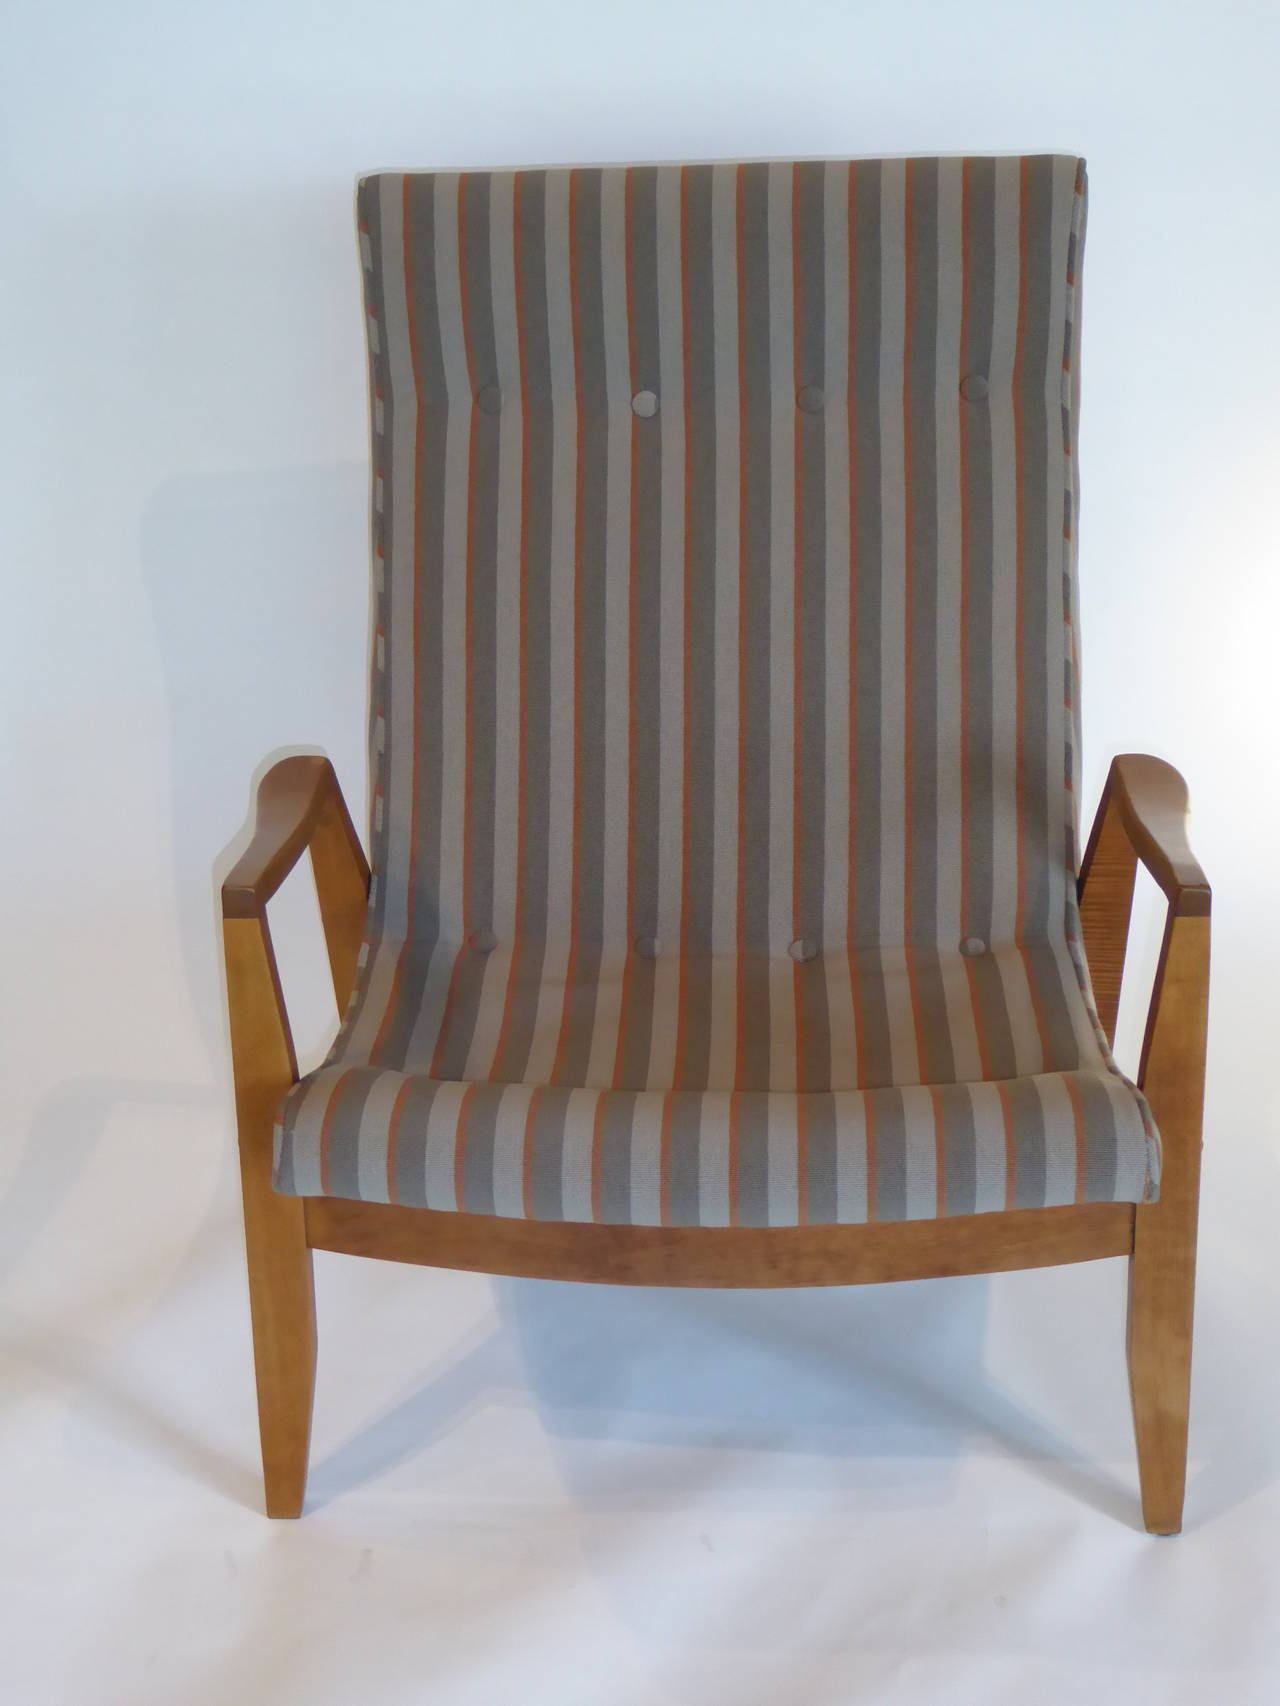 1950s Milo Baughman Scoop Lounge Chair and Ottoman For Sale 2